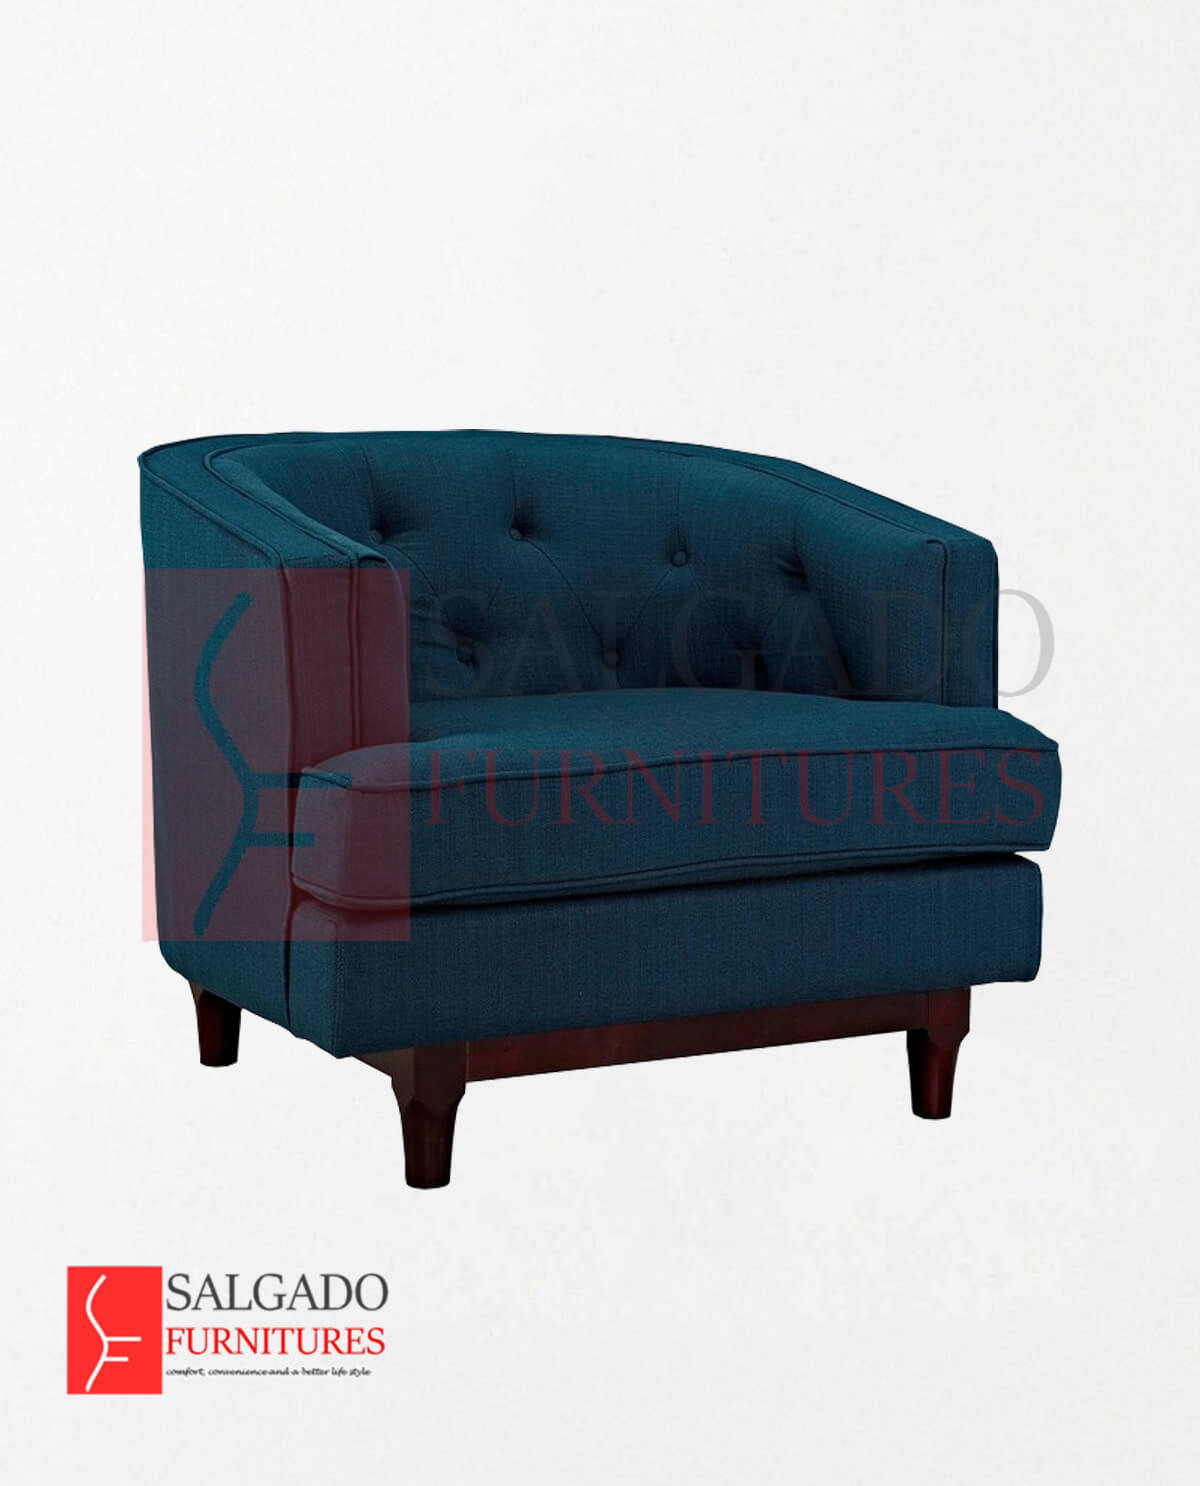 buy-sofa-sri lanka